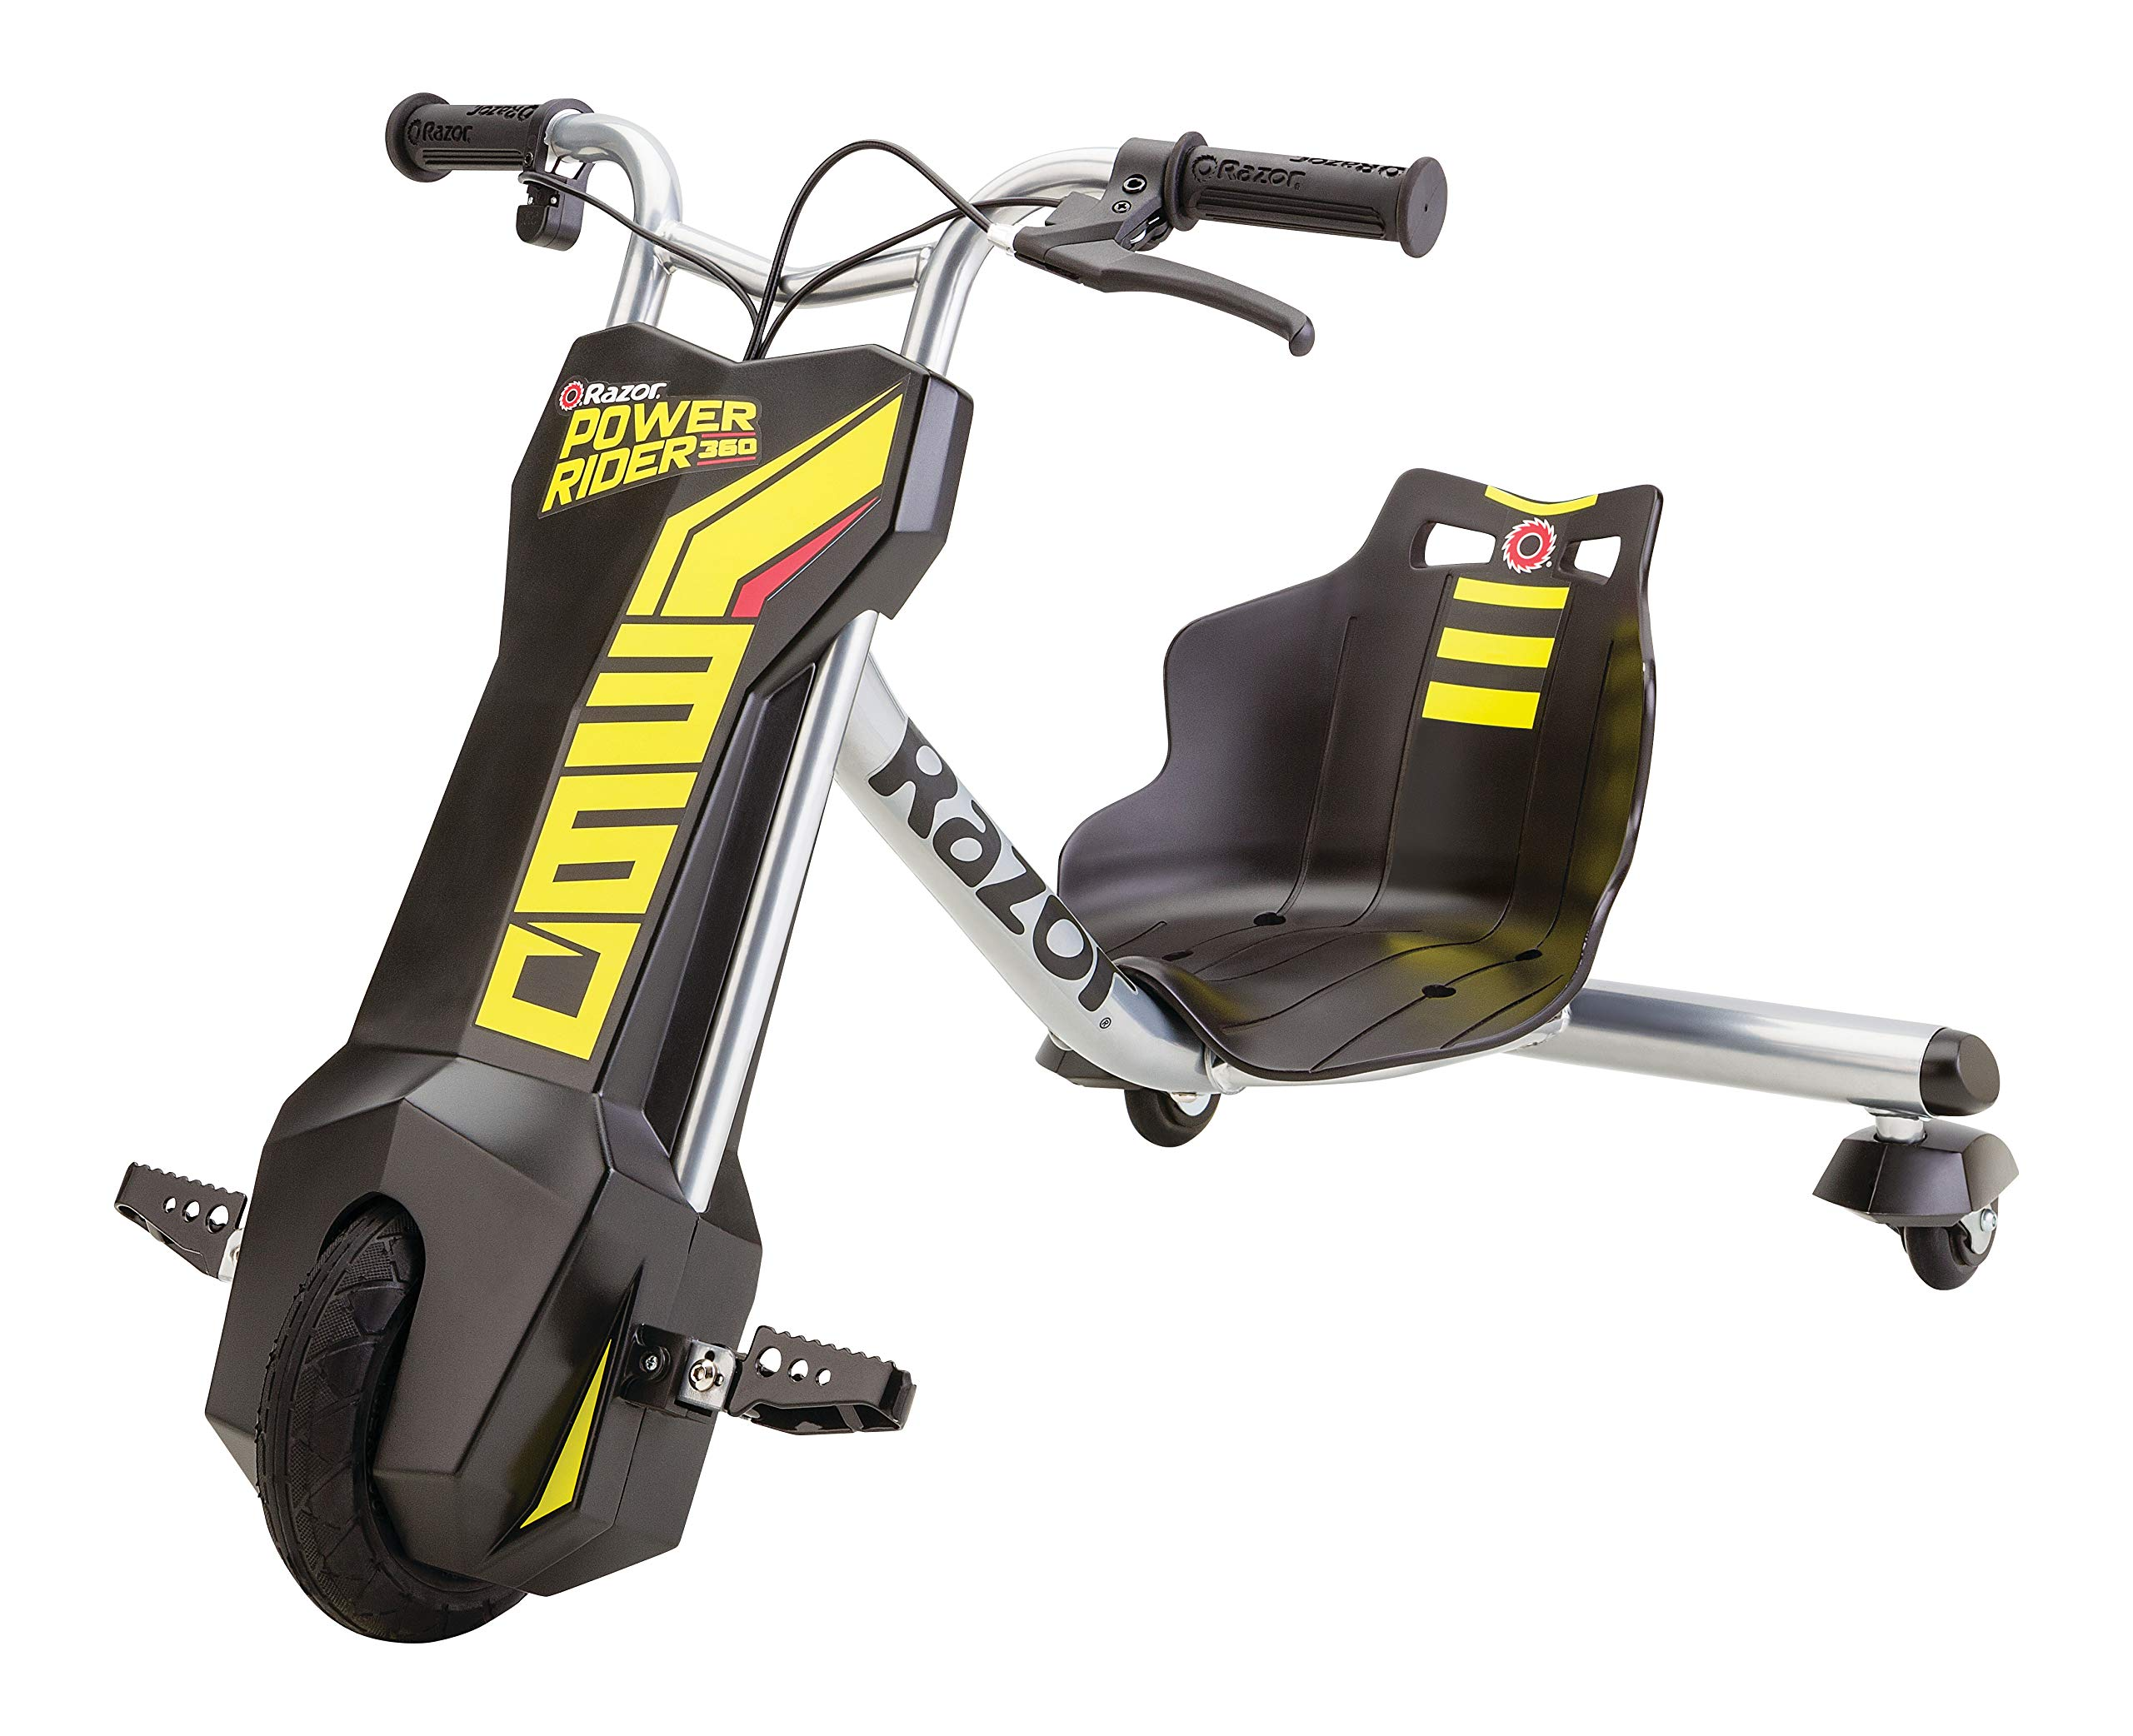 Razor Power Rider 360 Electric Tricycle Black, Yellow, 12 Volt